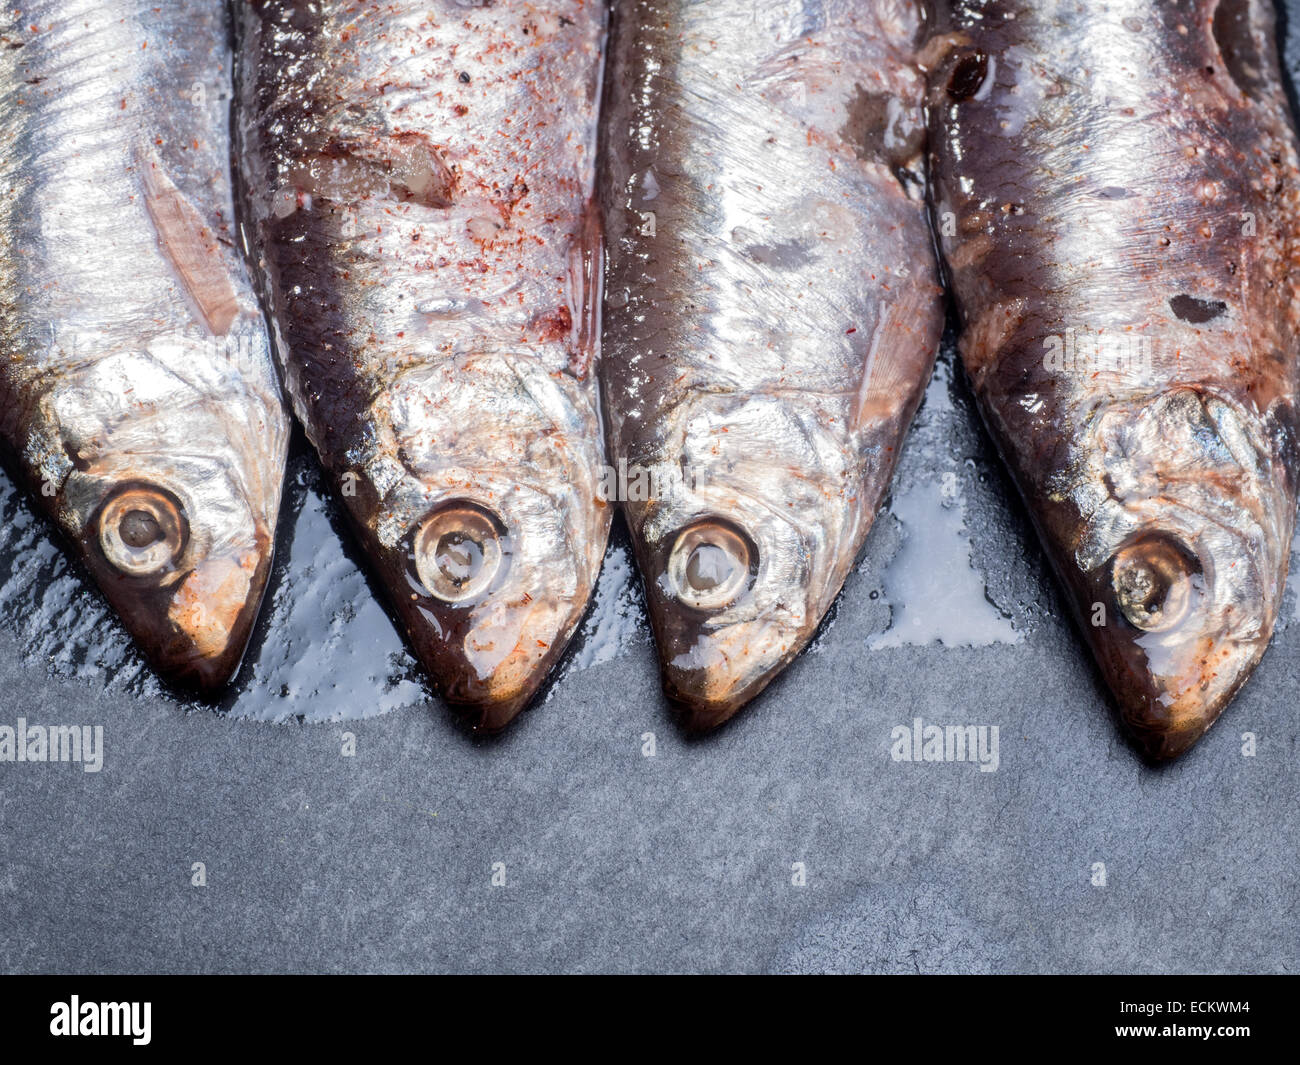 Anchovies sardines all ready to eat - Stock Image